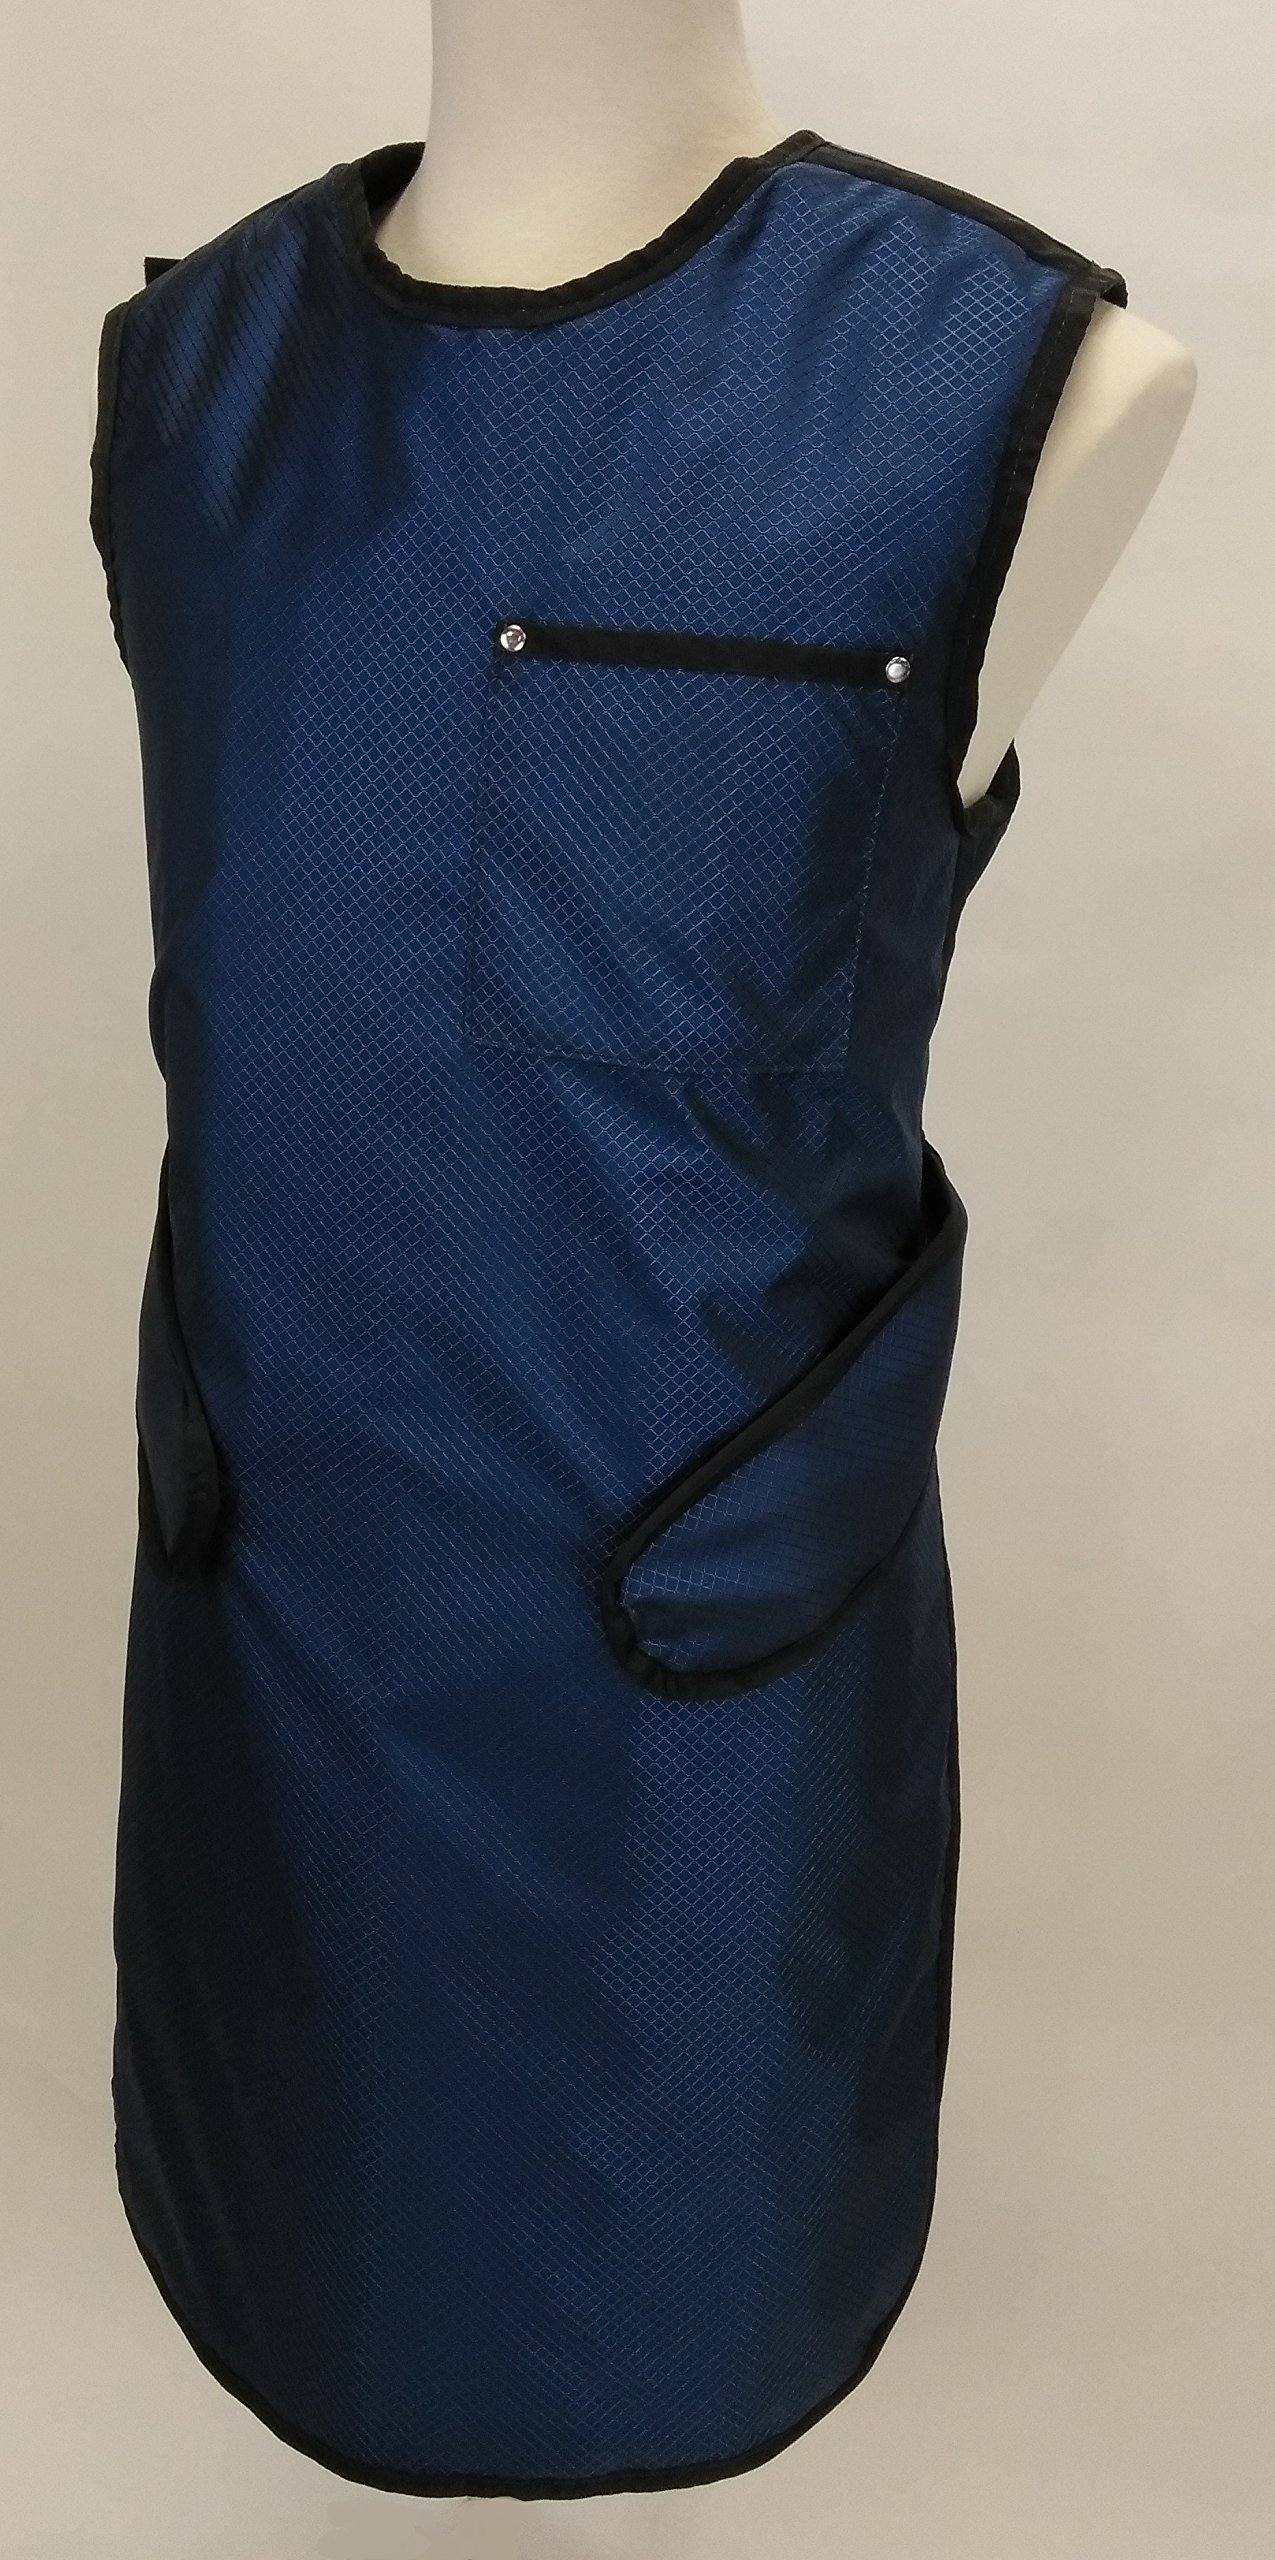 Lead Apron Zeus Lightweight Lead X-Ray Apron in Diamond Navy with Black Binding (Female) … (A Small Female 4/6, Diamond Blue) by USA XRAY (Image #1)